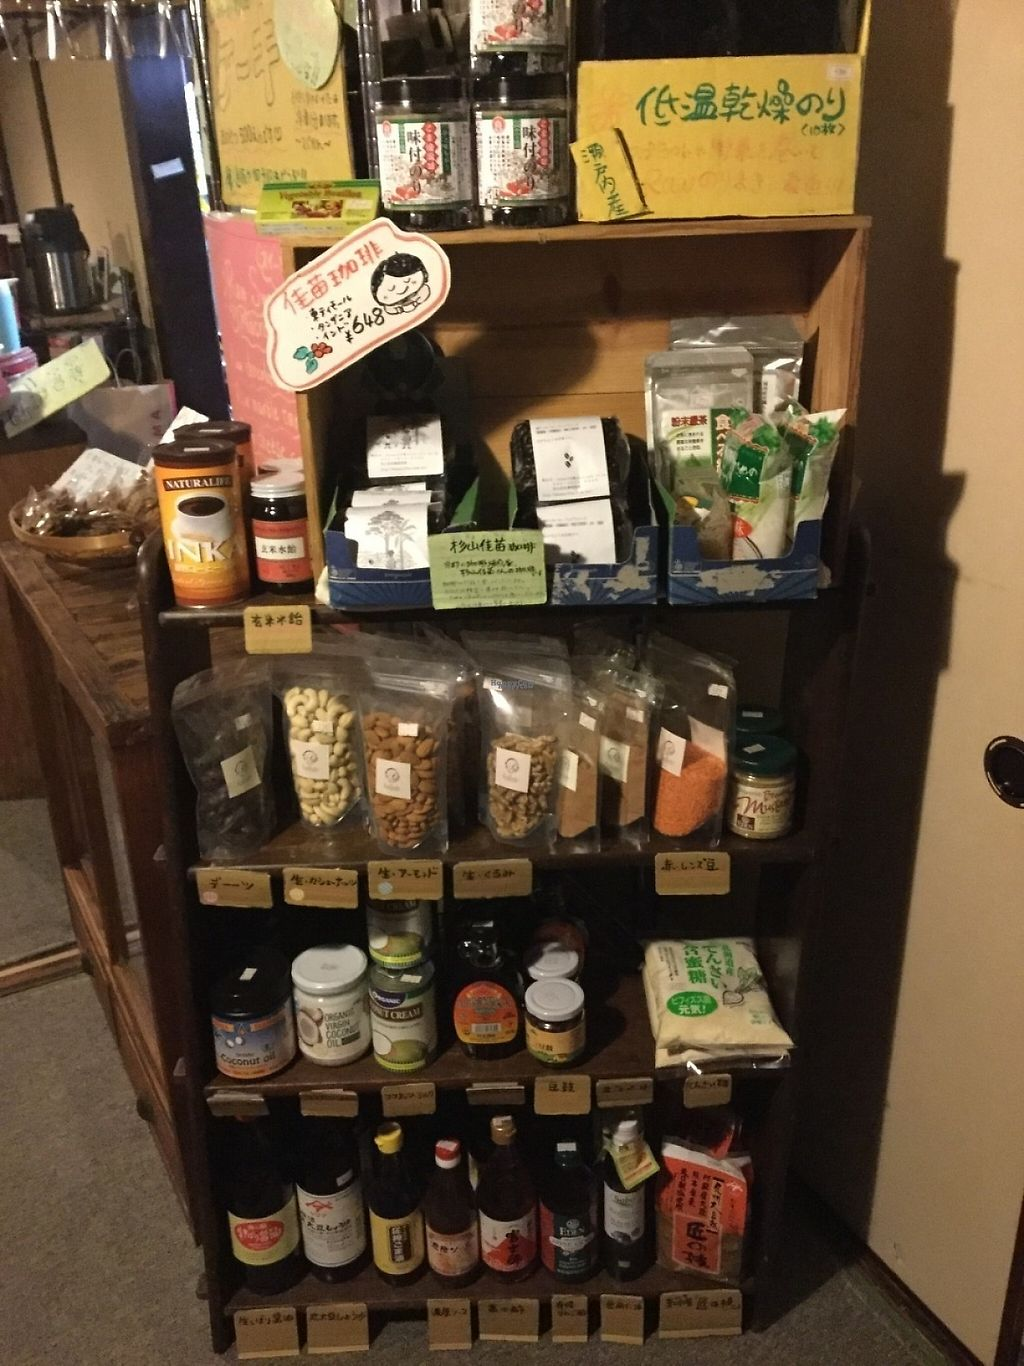 """Photo of Organic House Salute  by <a href=""""/members/profile/katiemcgrath"""">katiemcgrath</a> <br/>Lots of snacks and treats for sale <br/> February 8, 2017  - <a href='/contact/abuse/image/43818/224085'>Report</a>"""